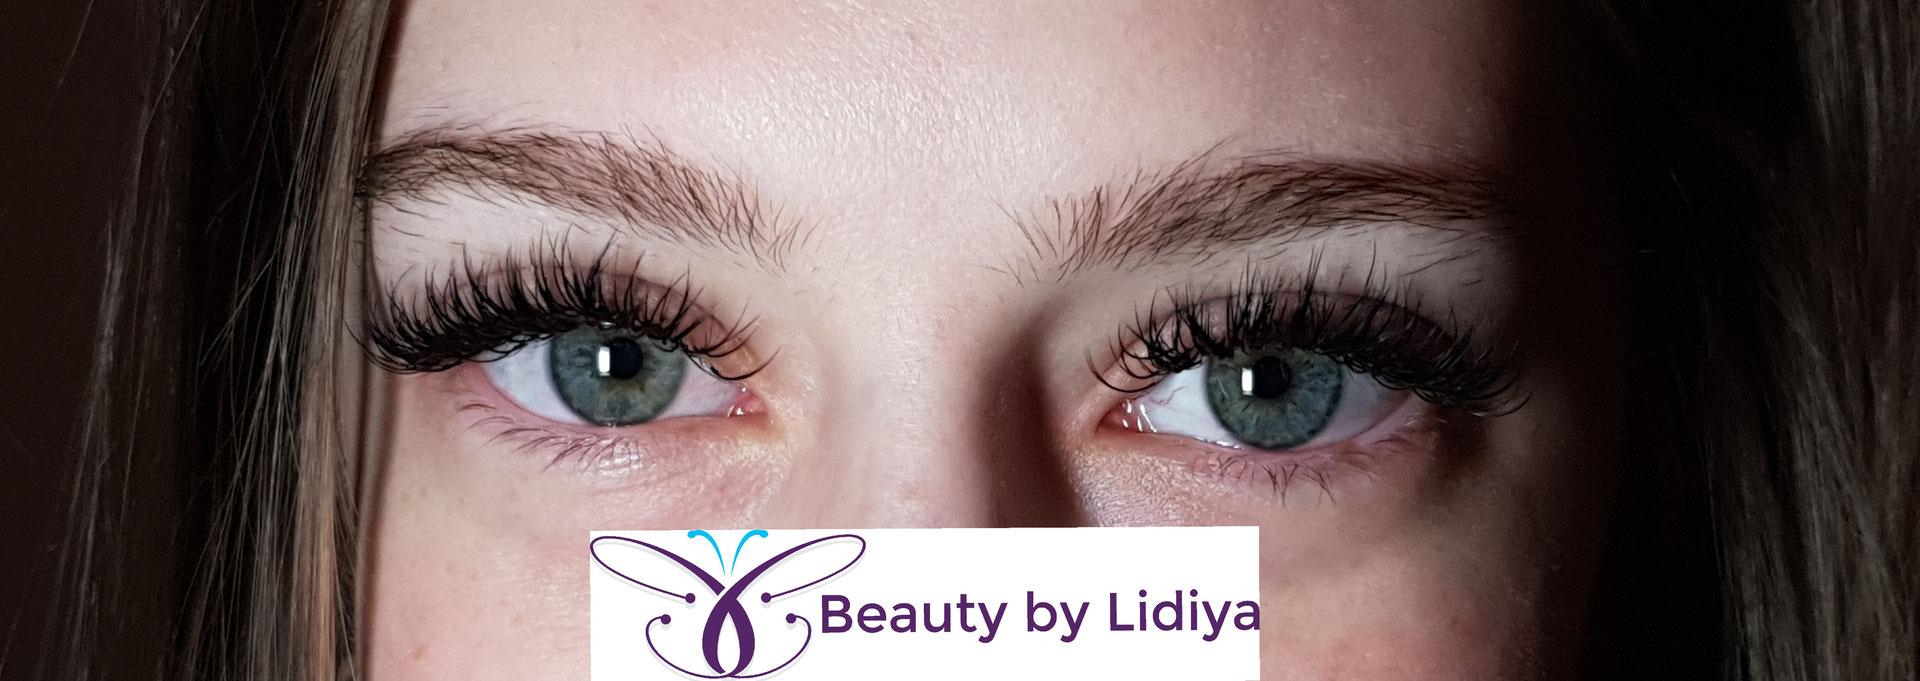 Eyelash Extentions St Albans Mobile Beauty By Lidiya St Albans Area